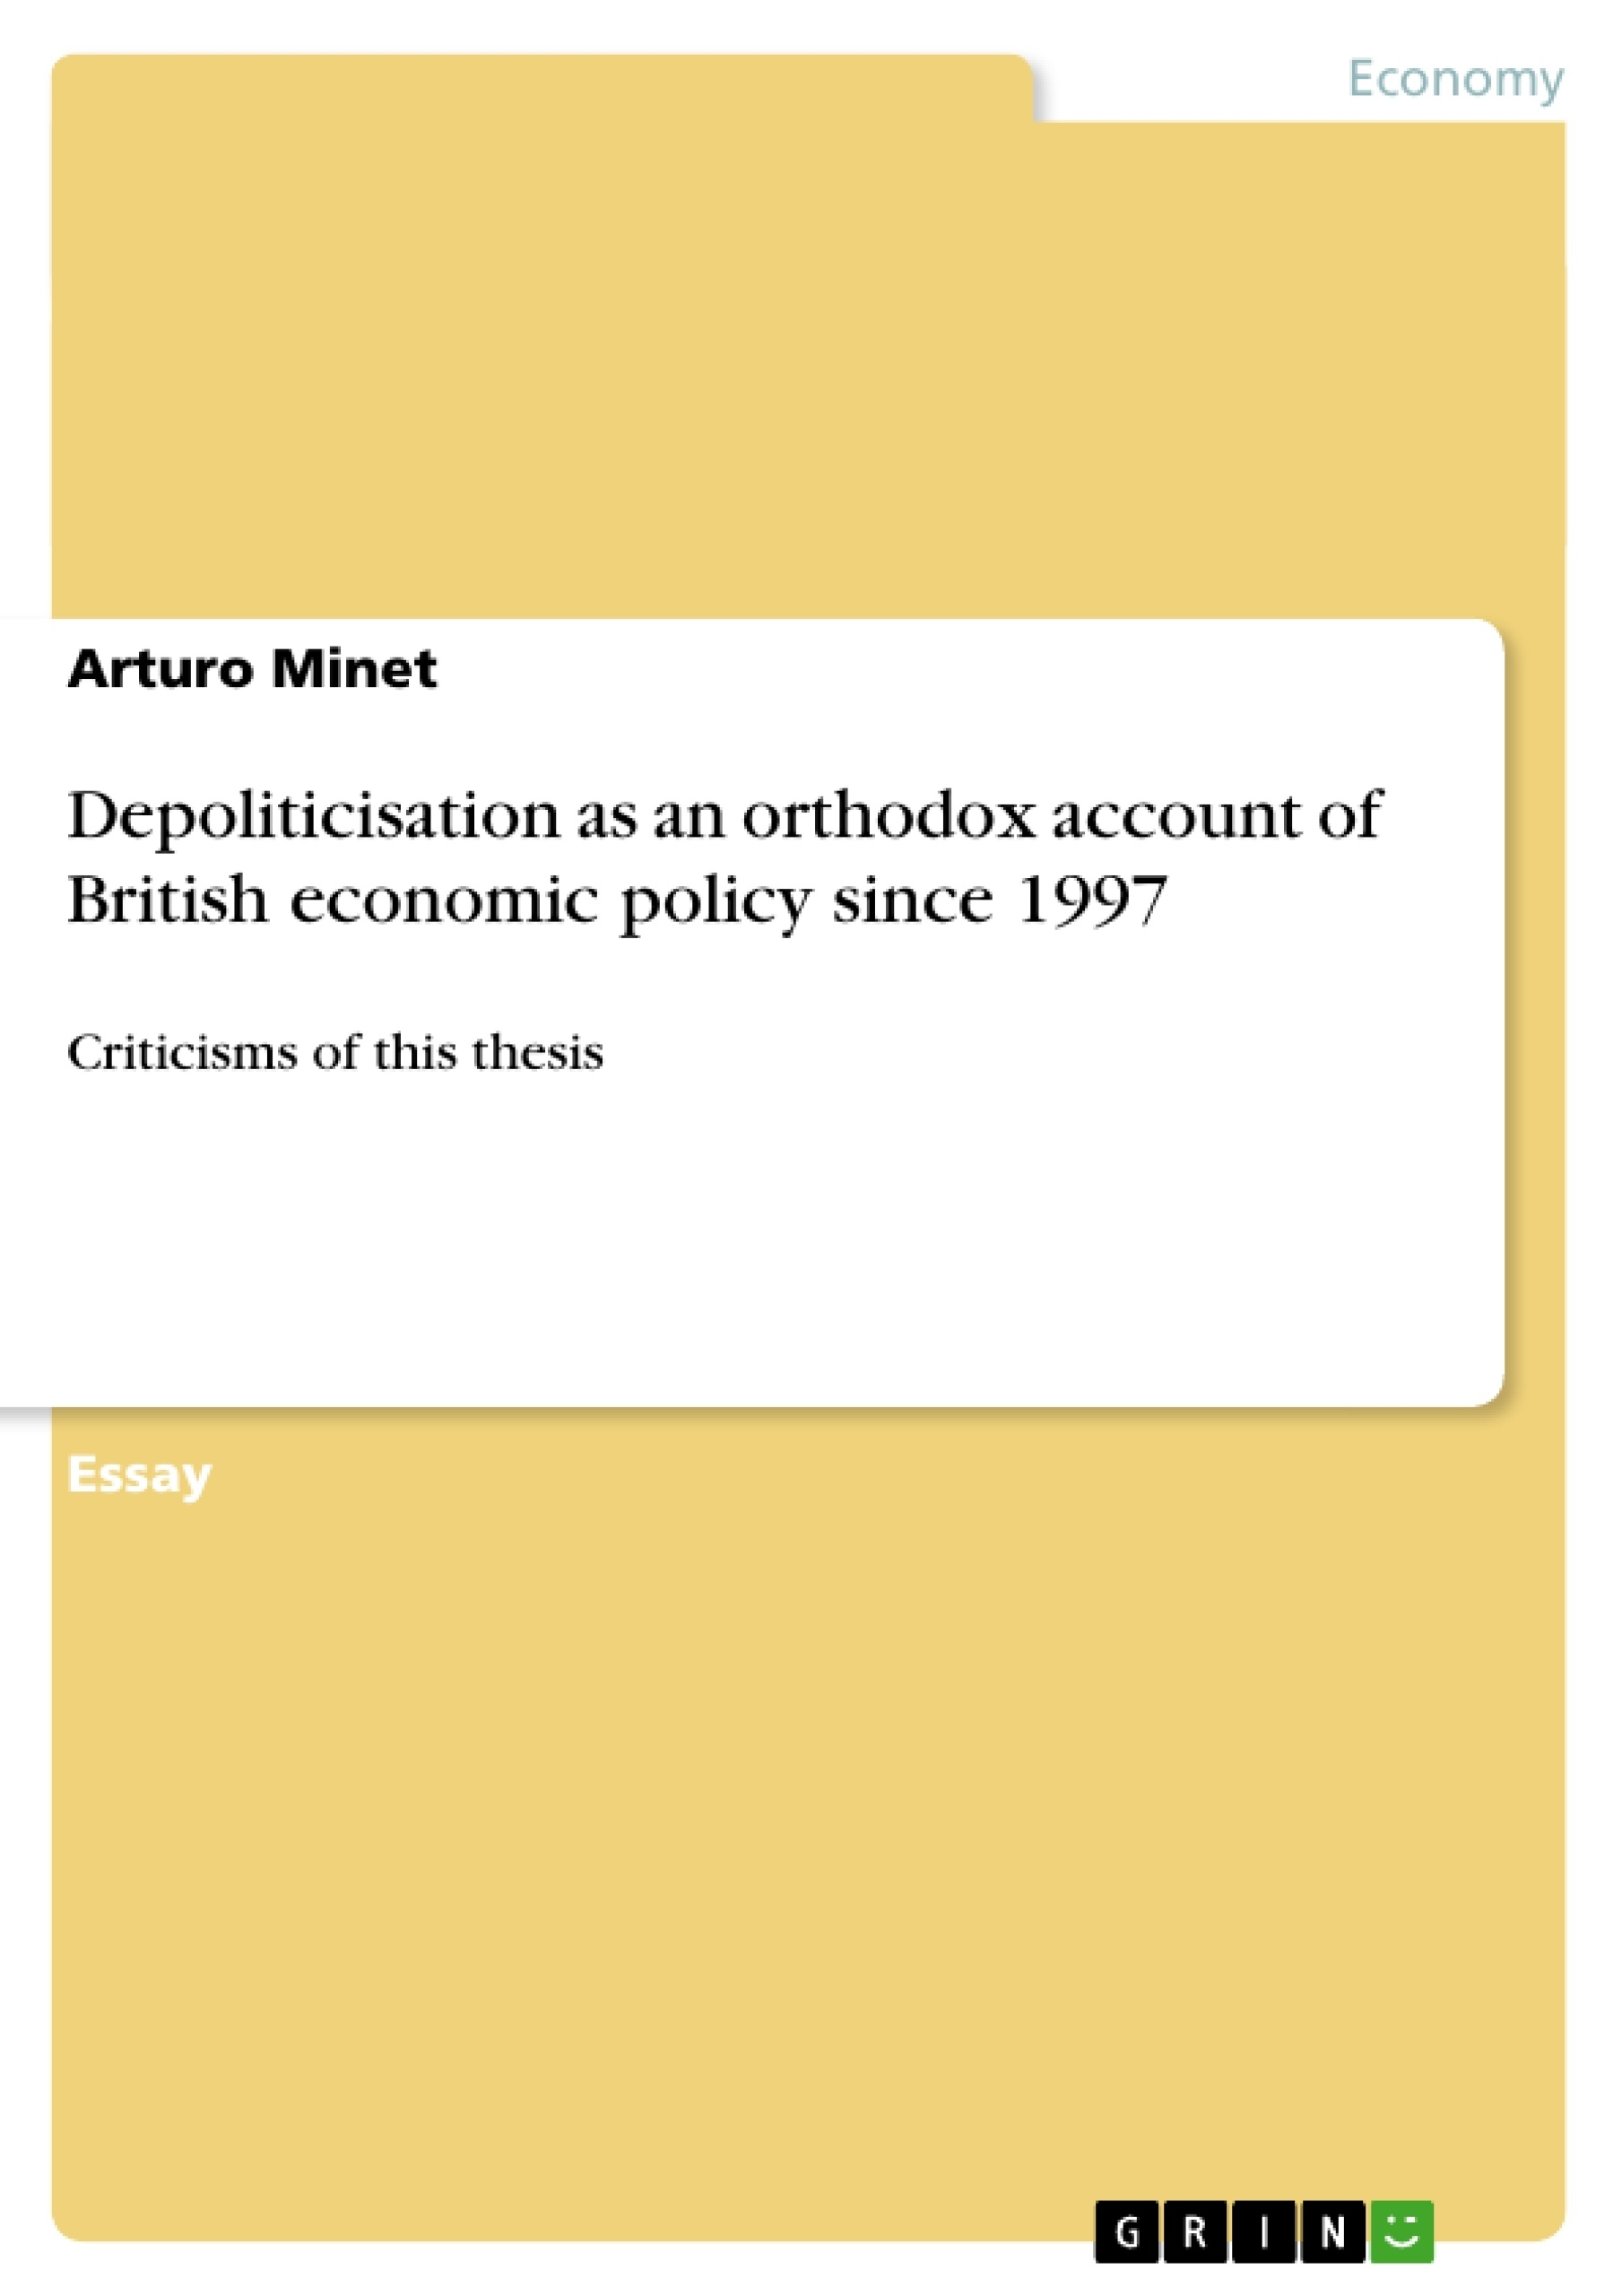 Title: Depoliticisation as an orthodox account of British economic policy since 1997